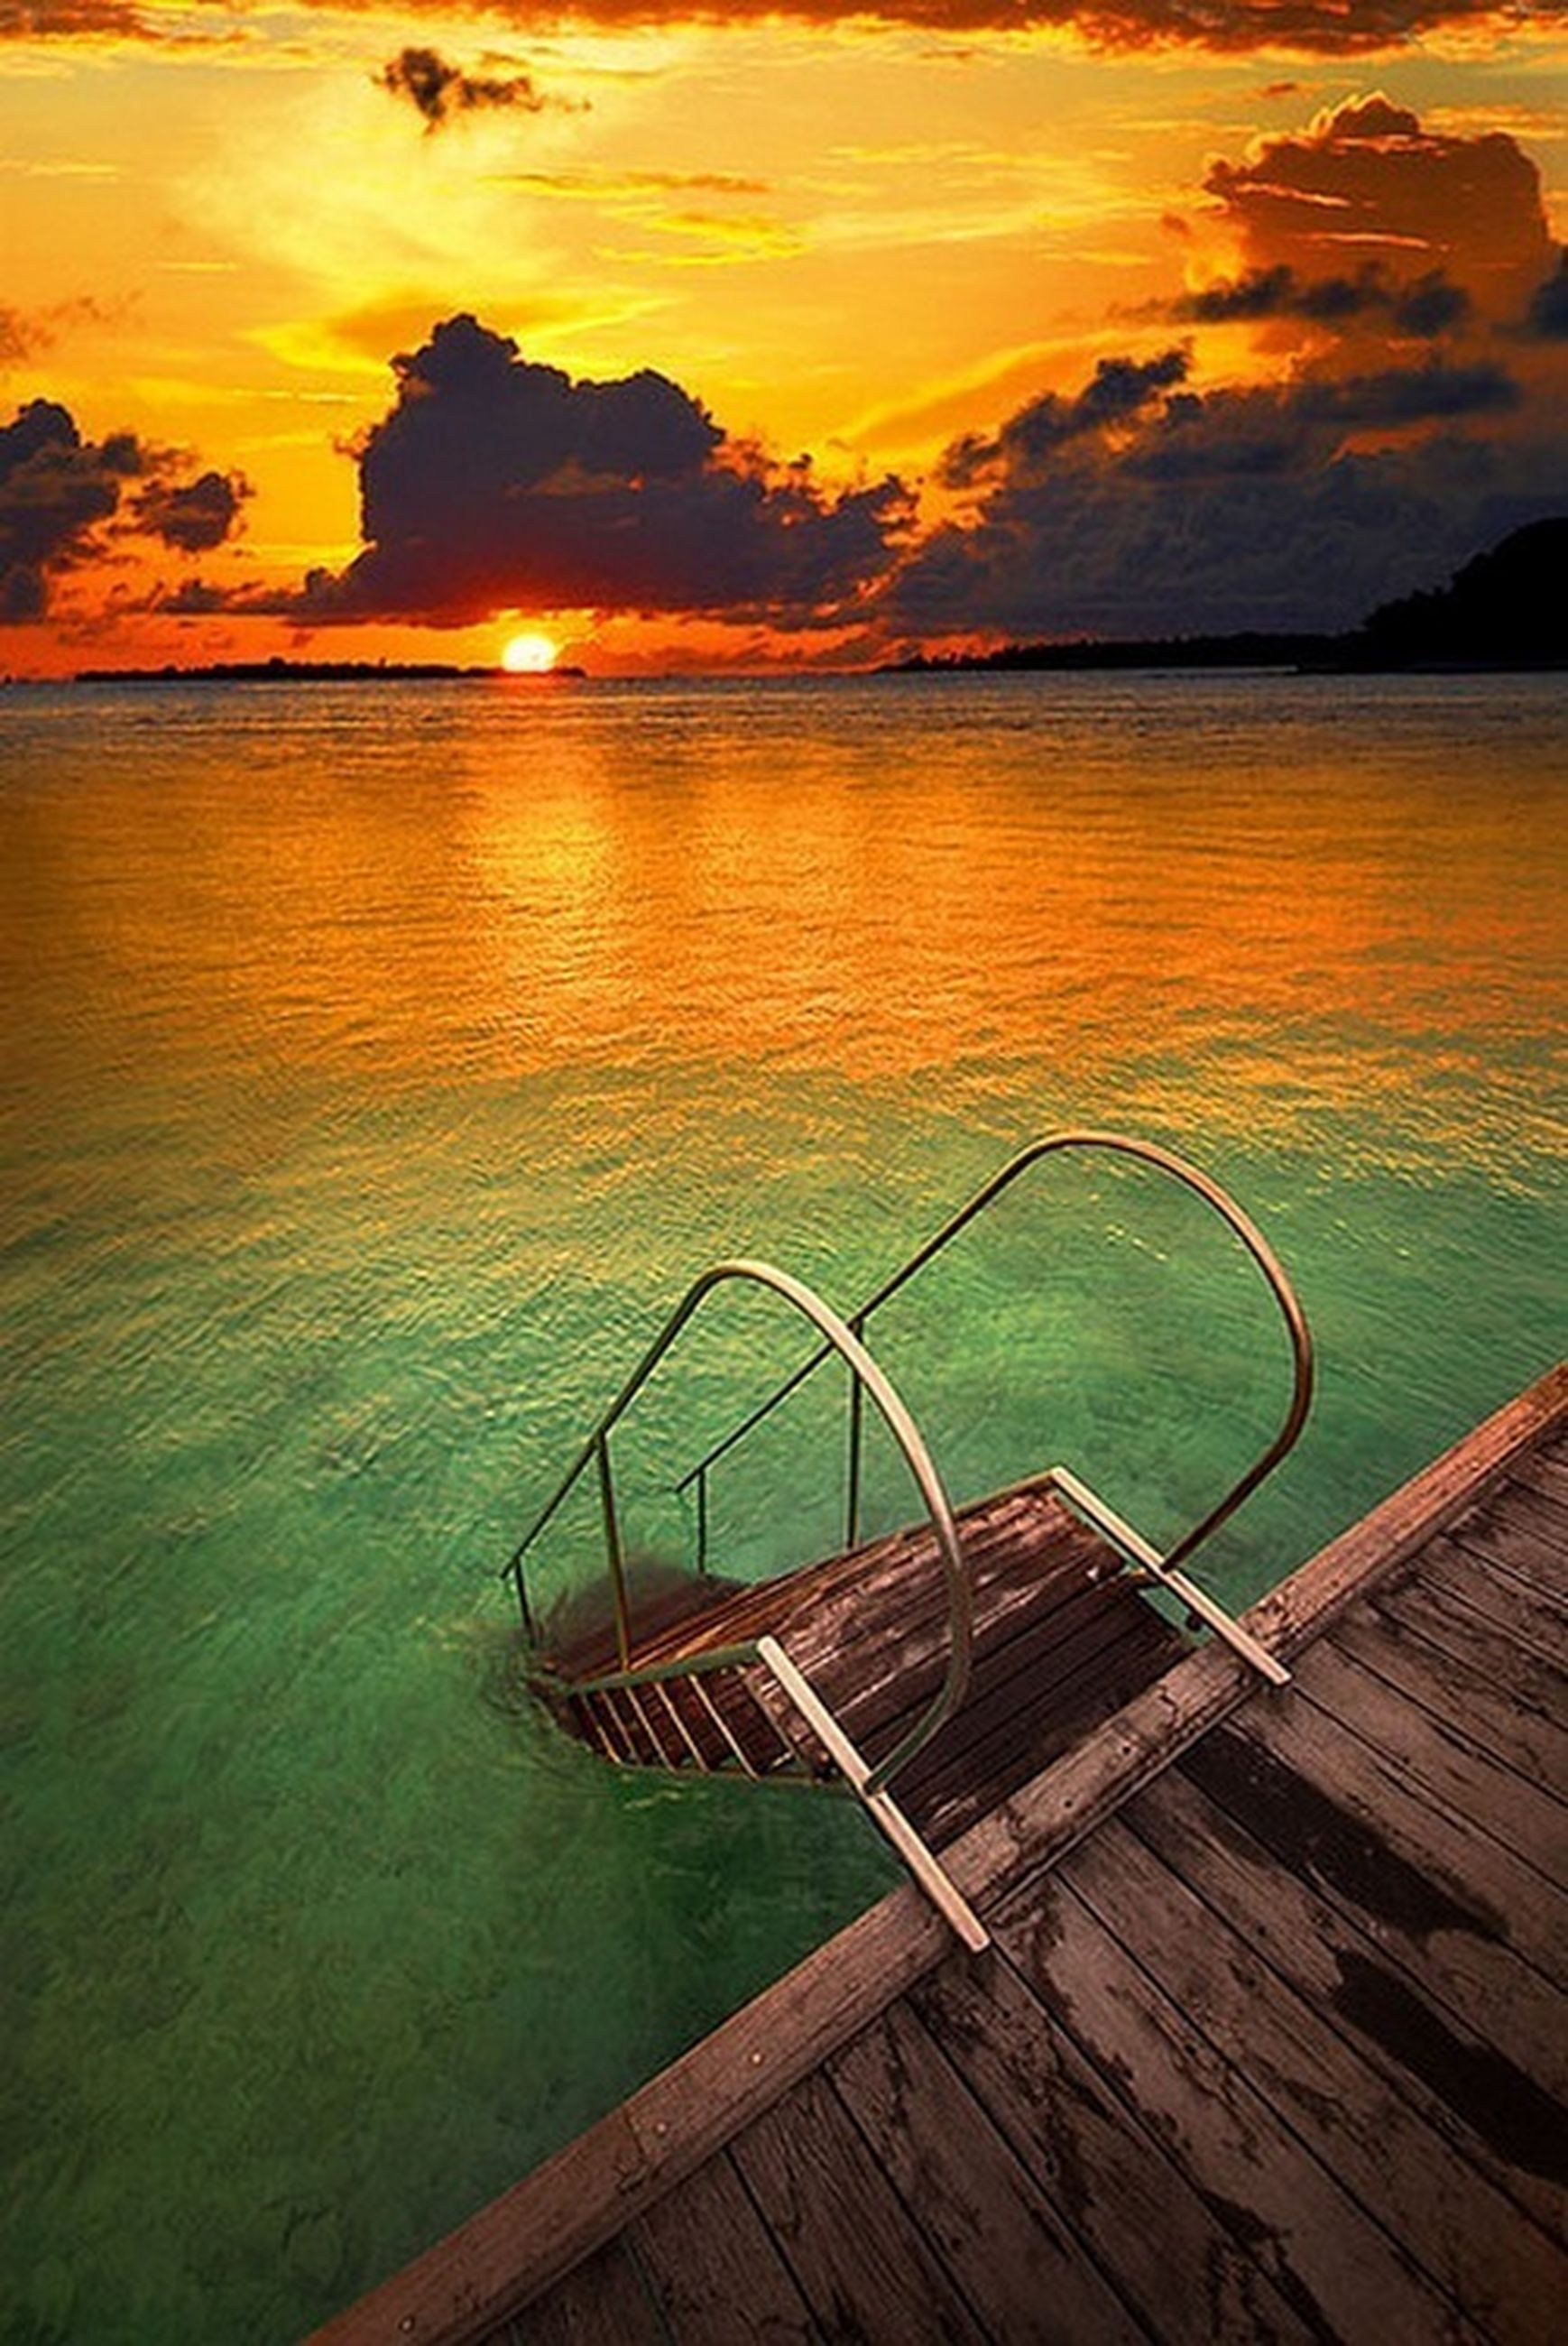 water, sunset, sky, sea, scenics, tranquility, tranquil scene, beauty in nature, cloud - sky, nature, horizon over water, idyllic, reflection, orange color, cloud, pier, beach, shore, wood - material, outdoors